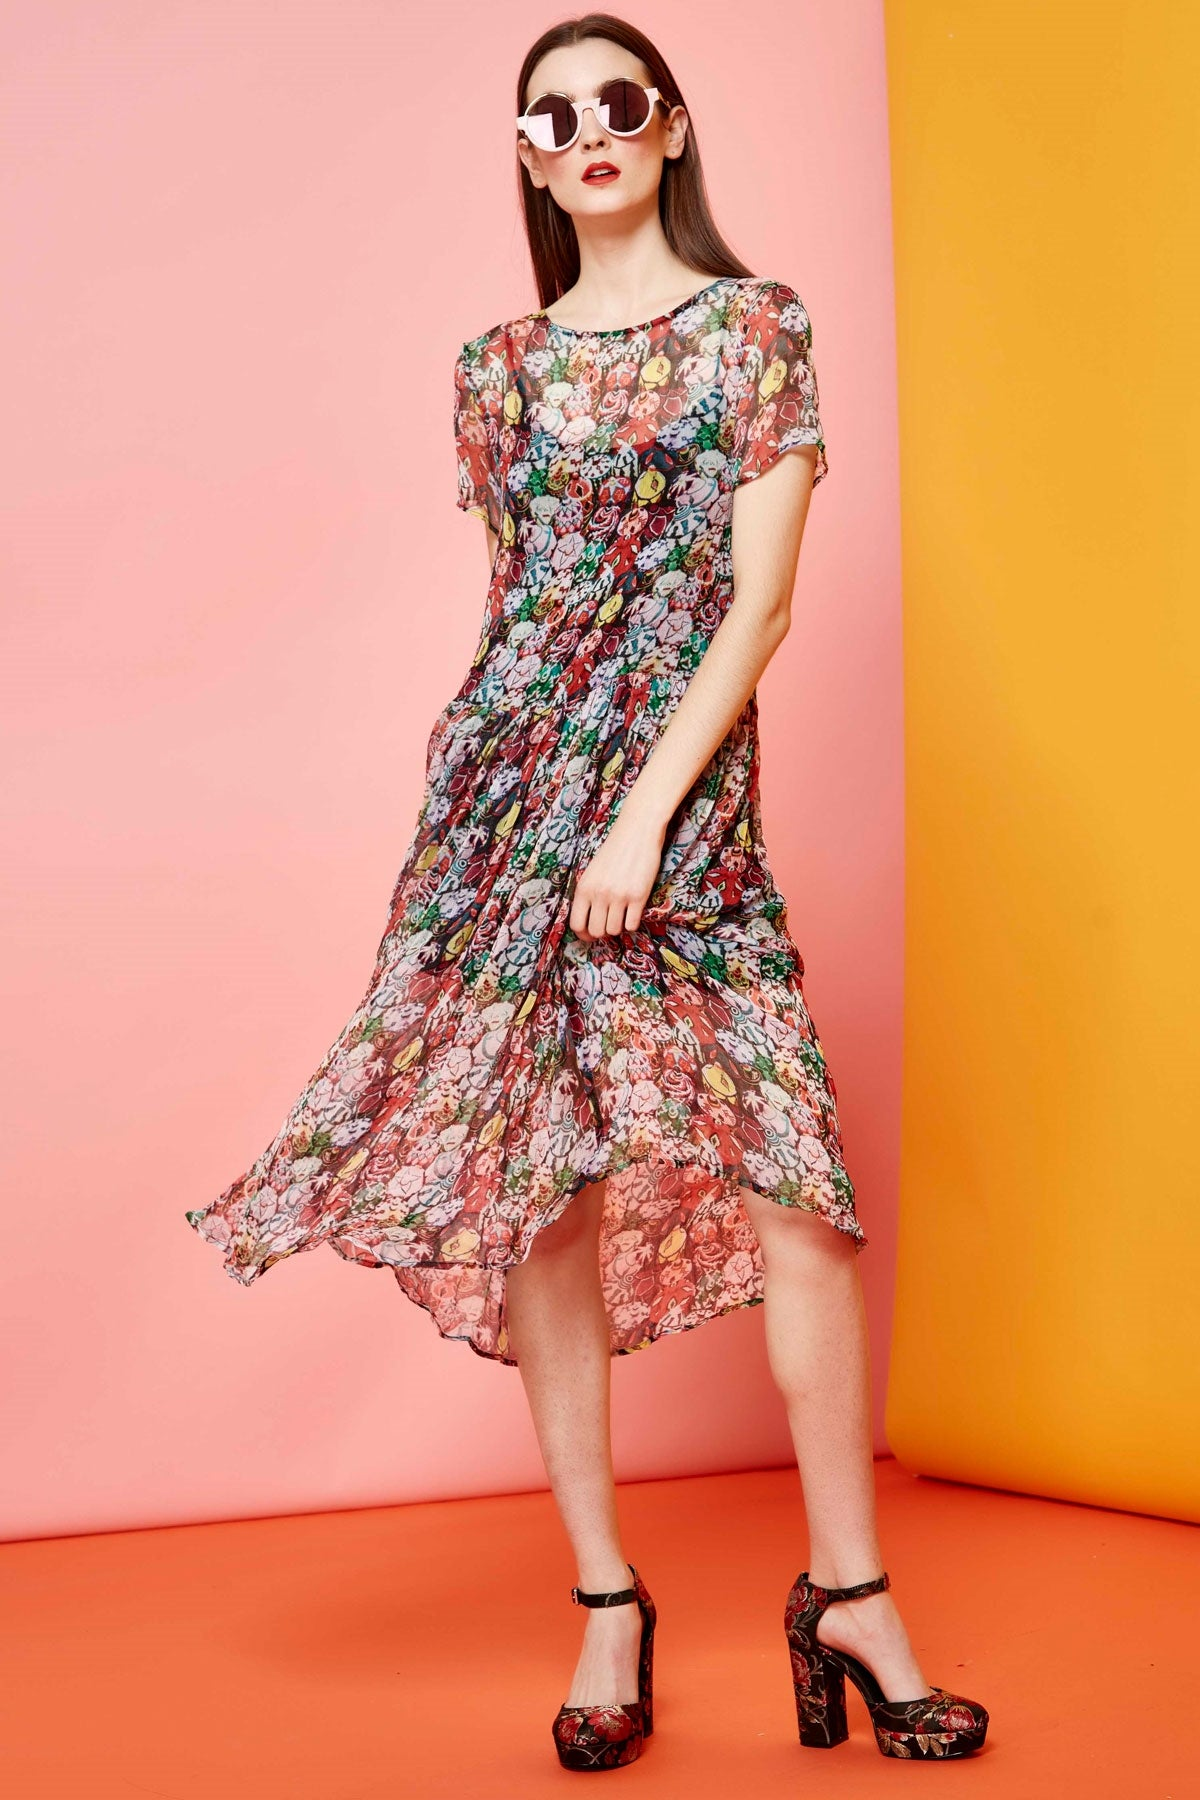 Chiffon My Mind Floral Floaty Dress by Cooper Trelise Cooper Stockists Auckland Parnell River NZ Designer Clothing